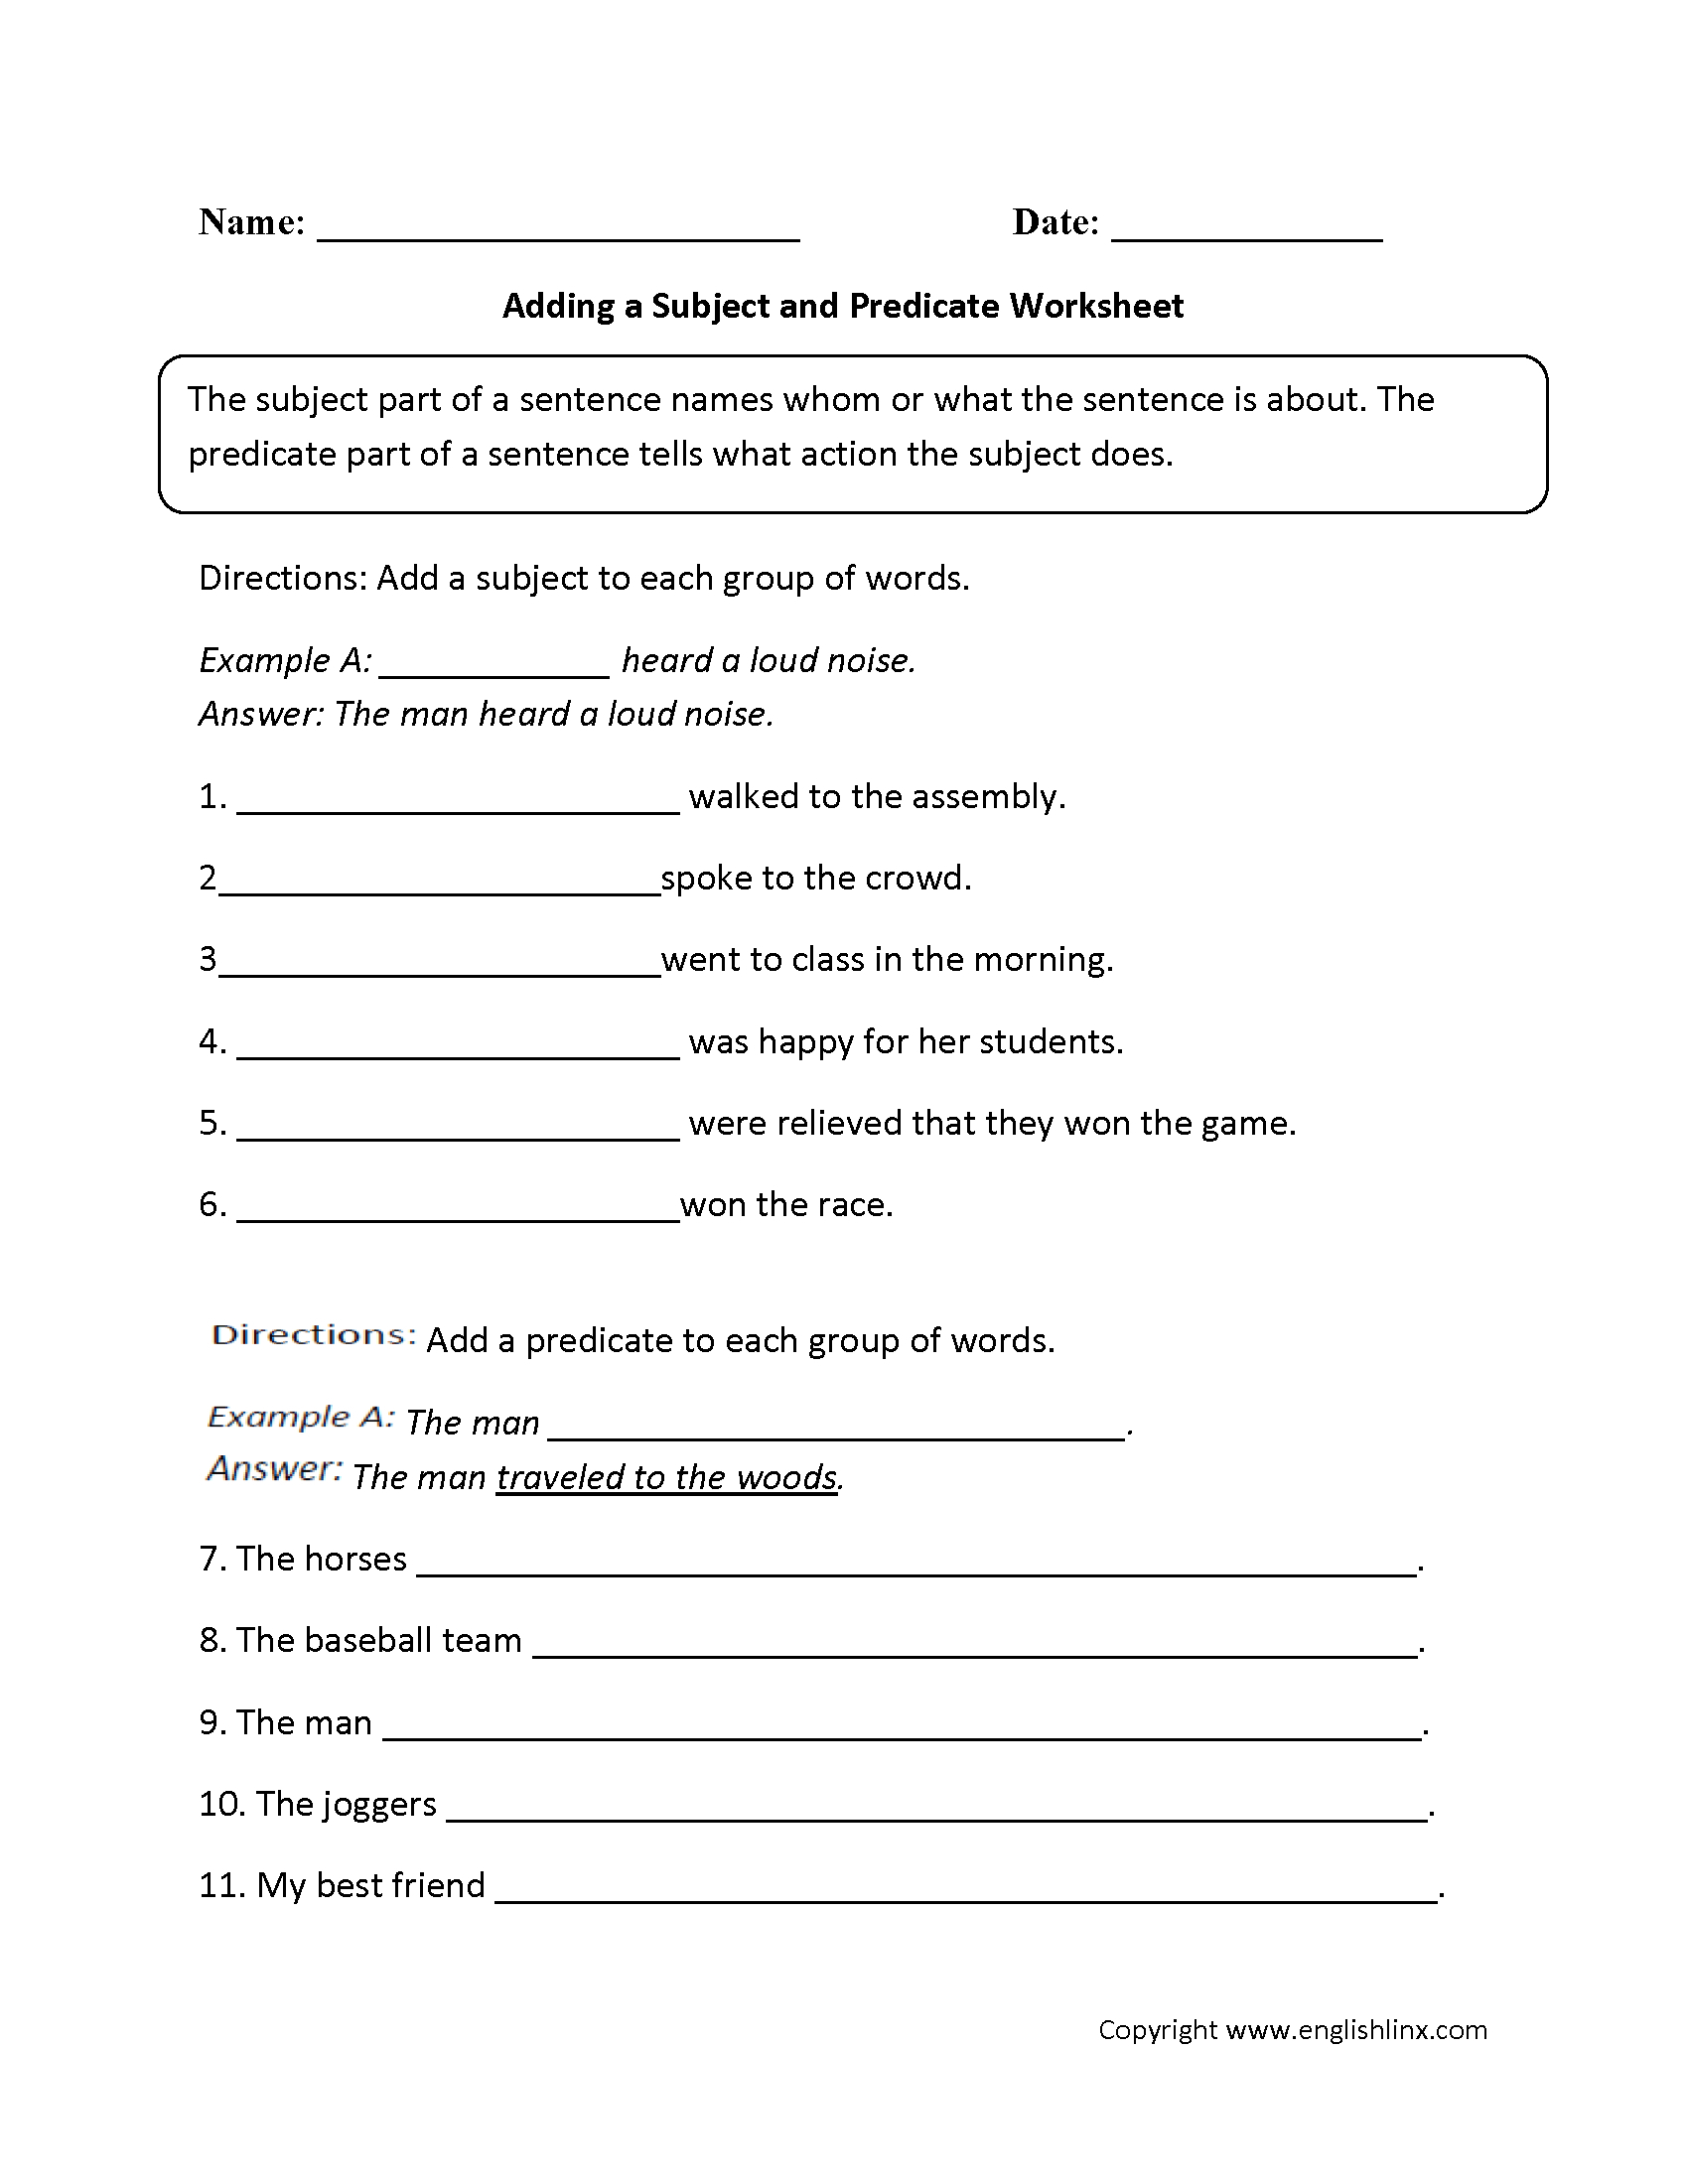 Englishlinx | Subject And Predicate Worksheets - 9Th Grade English | Year 9 English Worksheets Printable